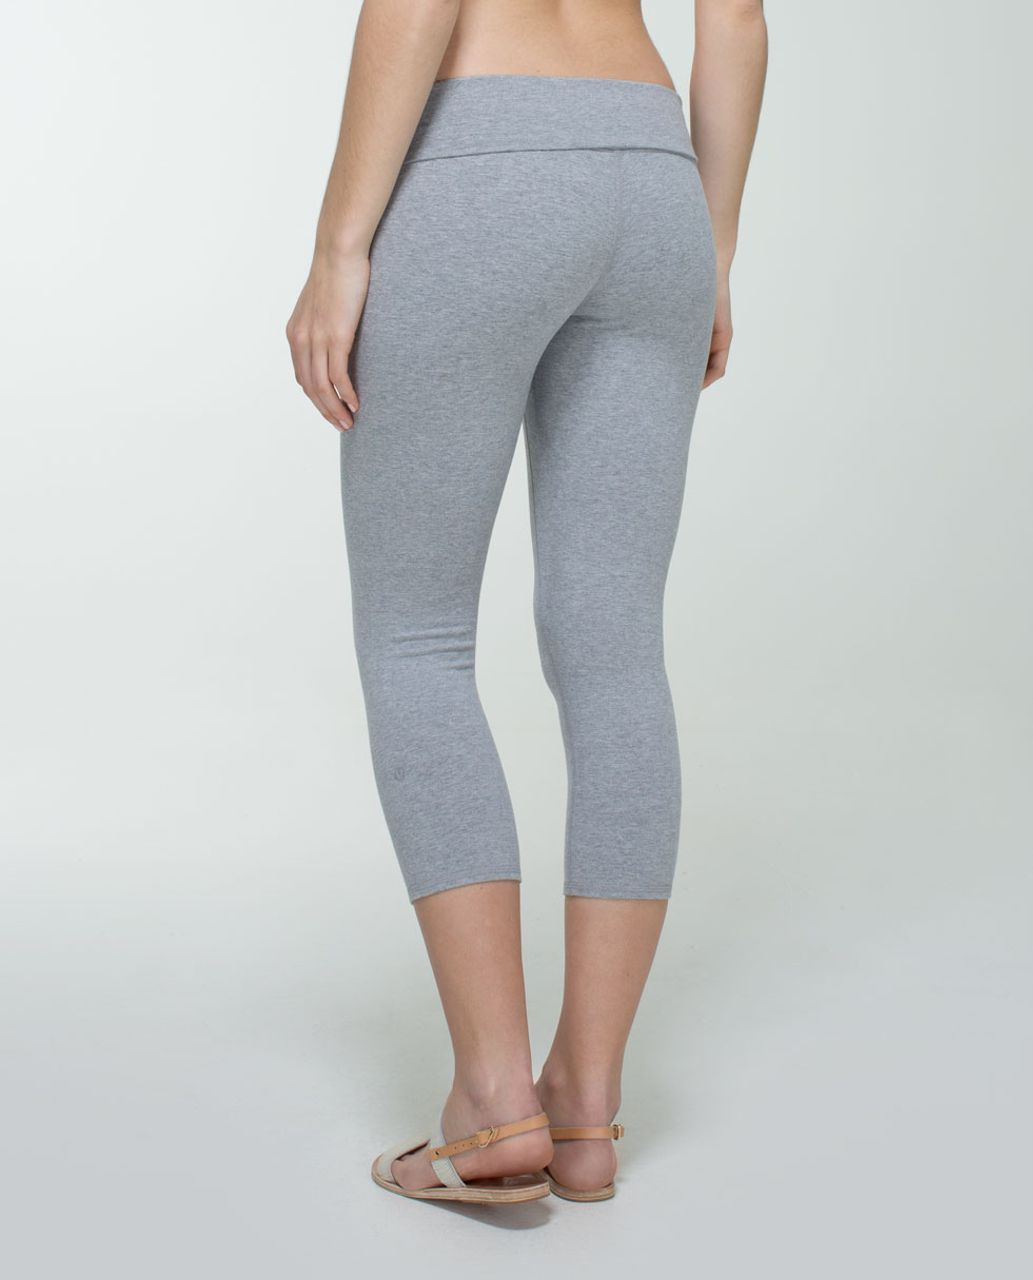 Lululemon Wunder Under Crop (Roll Down) *Cotton - Heathered Medium Grey